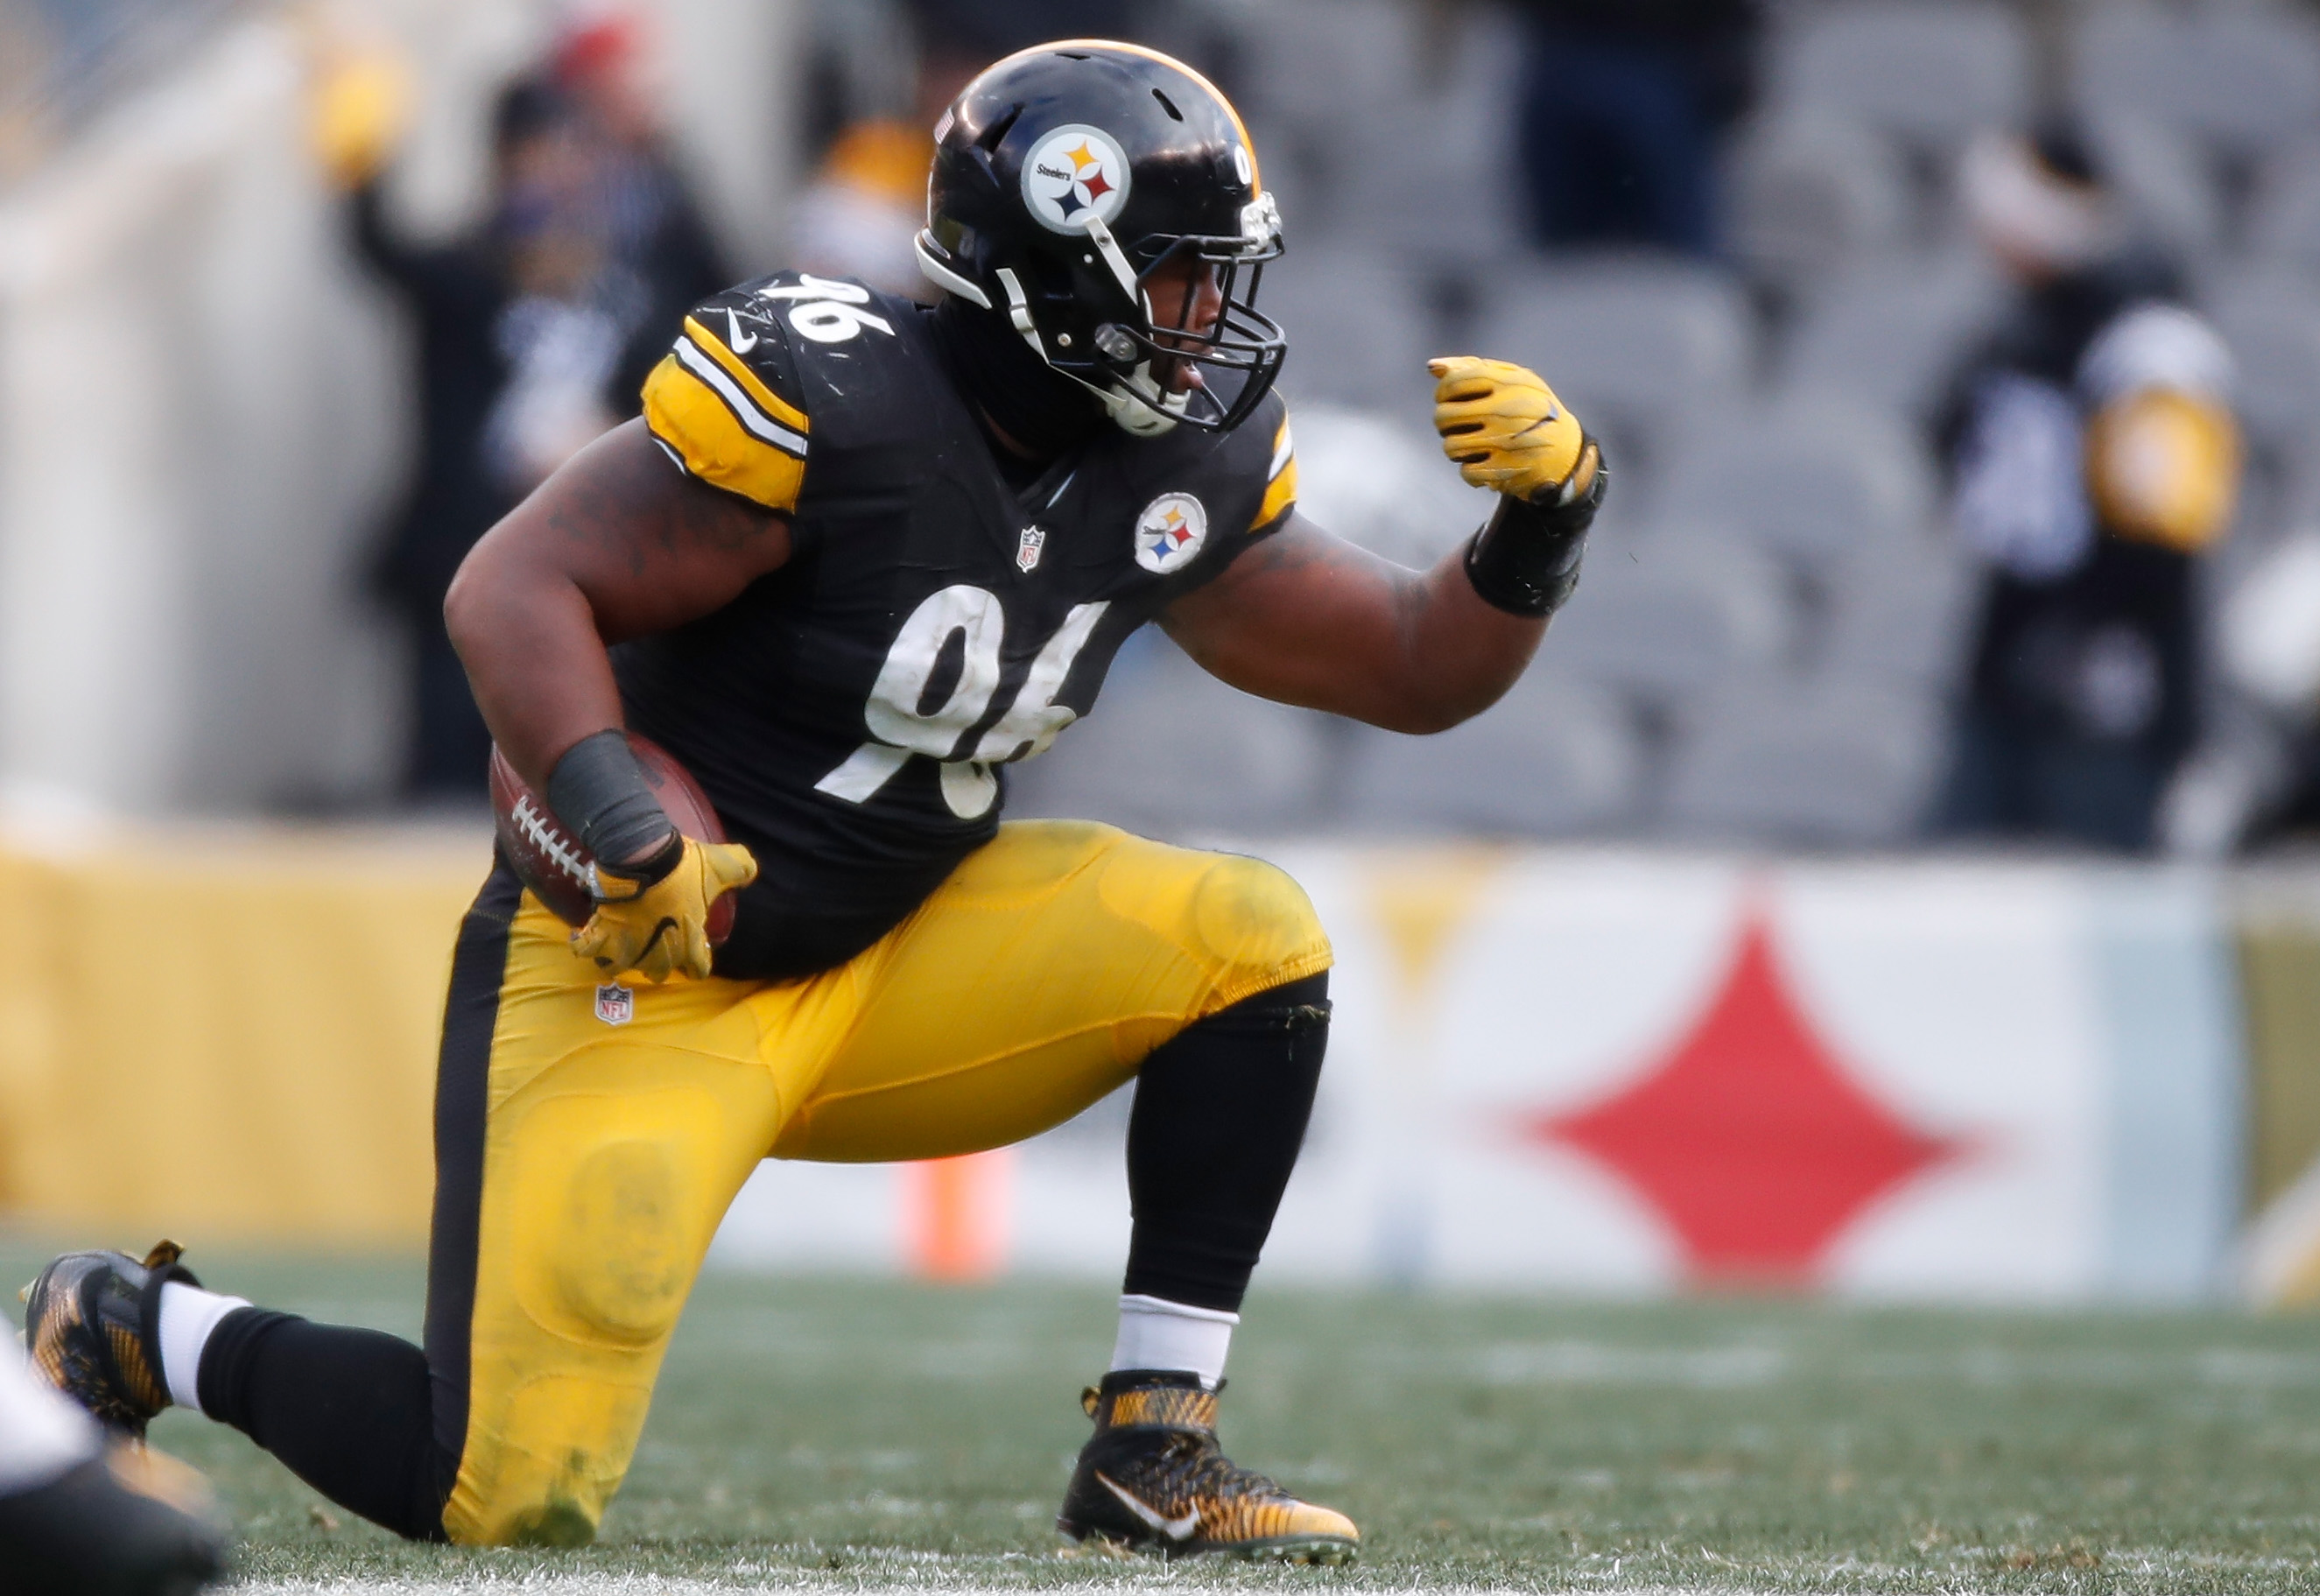 pittsburgh steelers playoffs, steelers playoffs schedule, when, who what team do steelers play, date, time, where, steelers divisional round, date, tickets